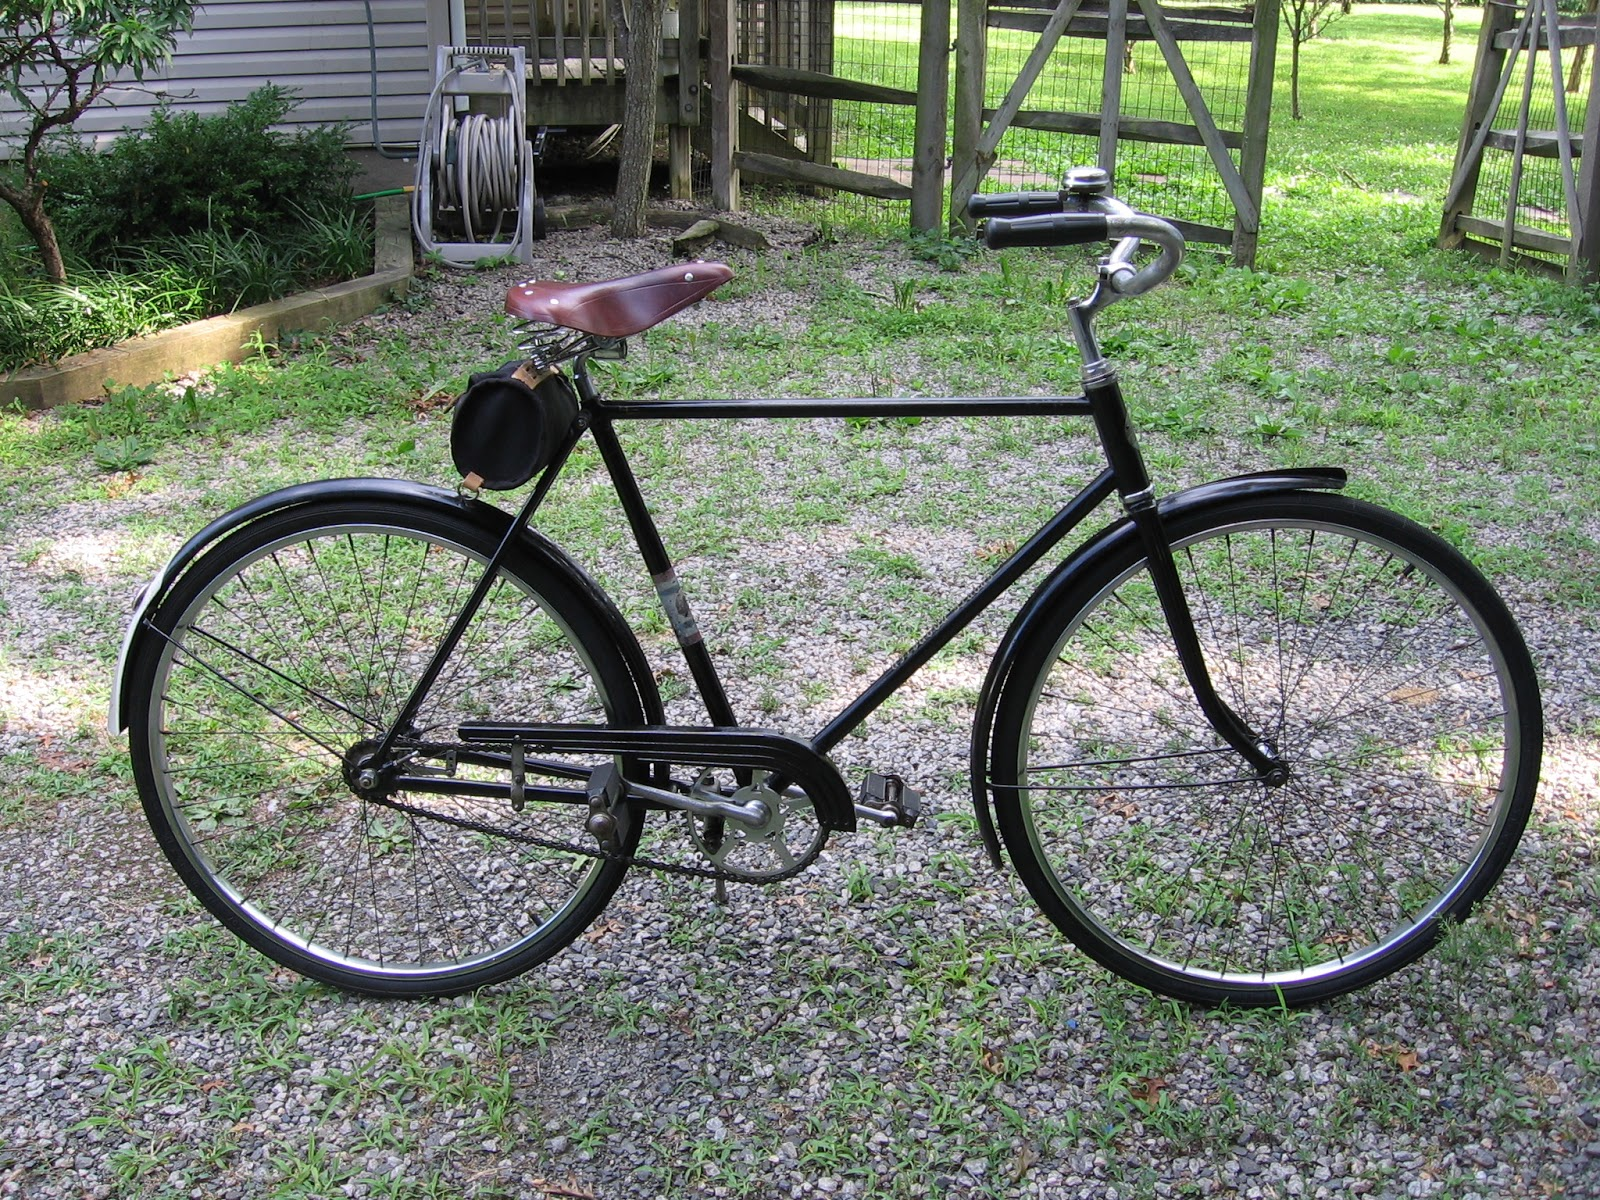 The Bike Shed: 1940 Westfield Sports Roadster Bicycle